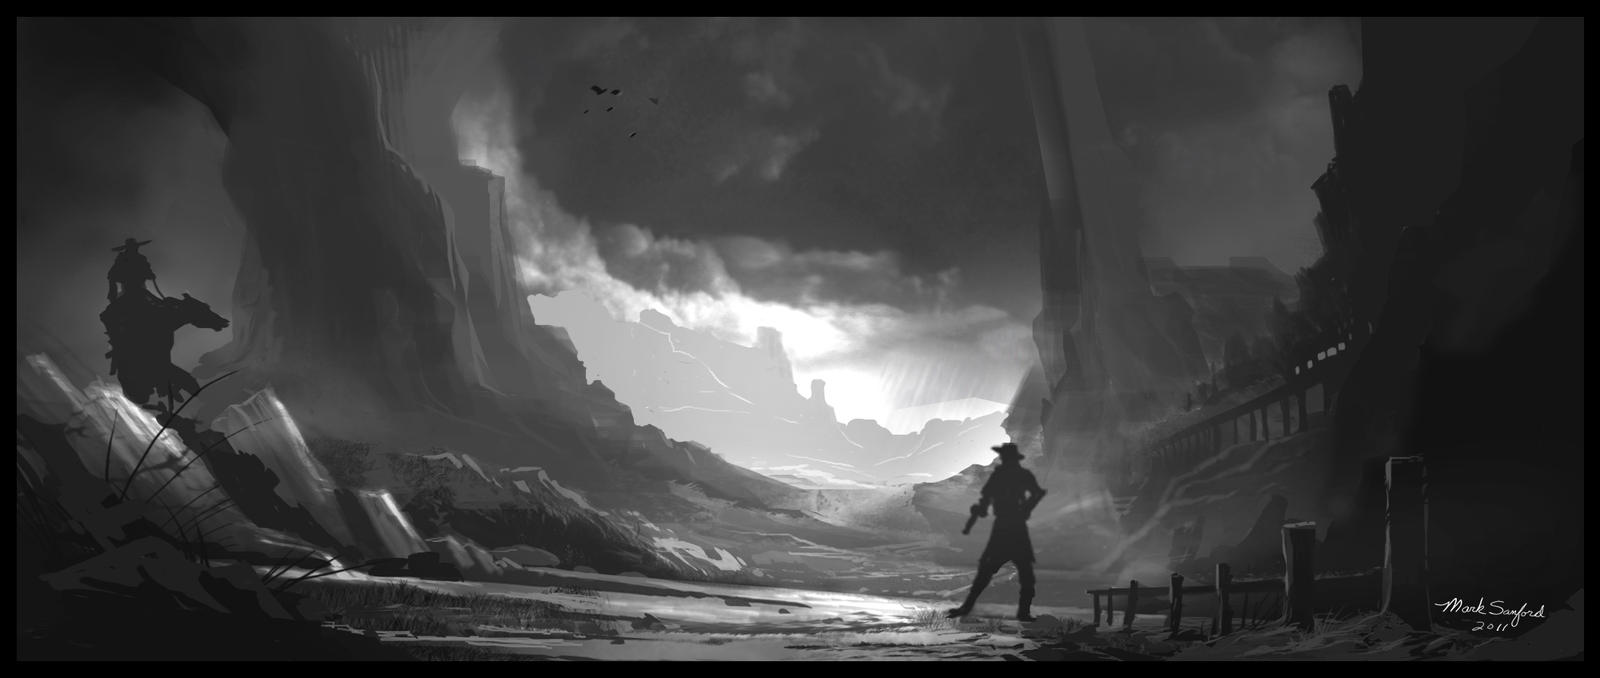 Value Study 2 by Multiimage